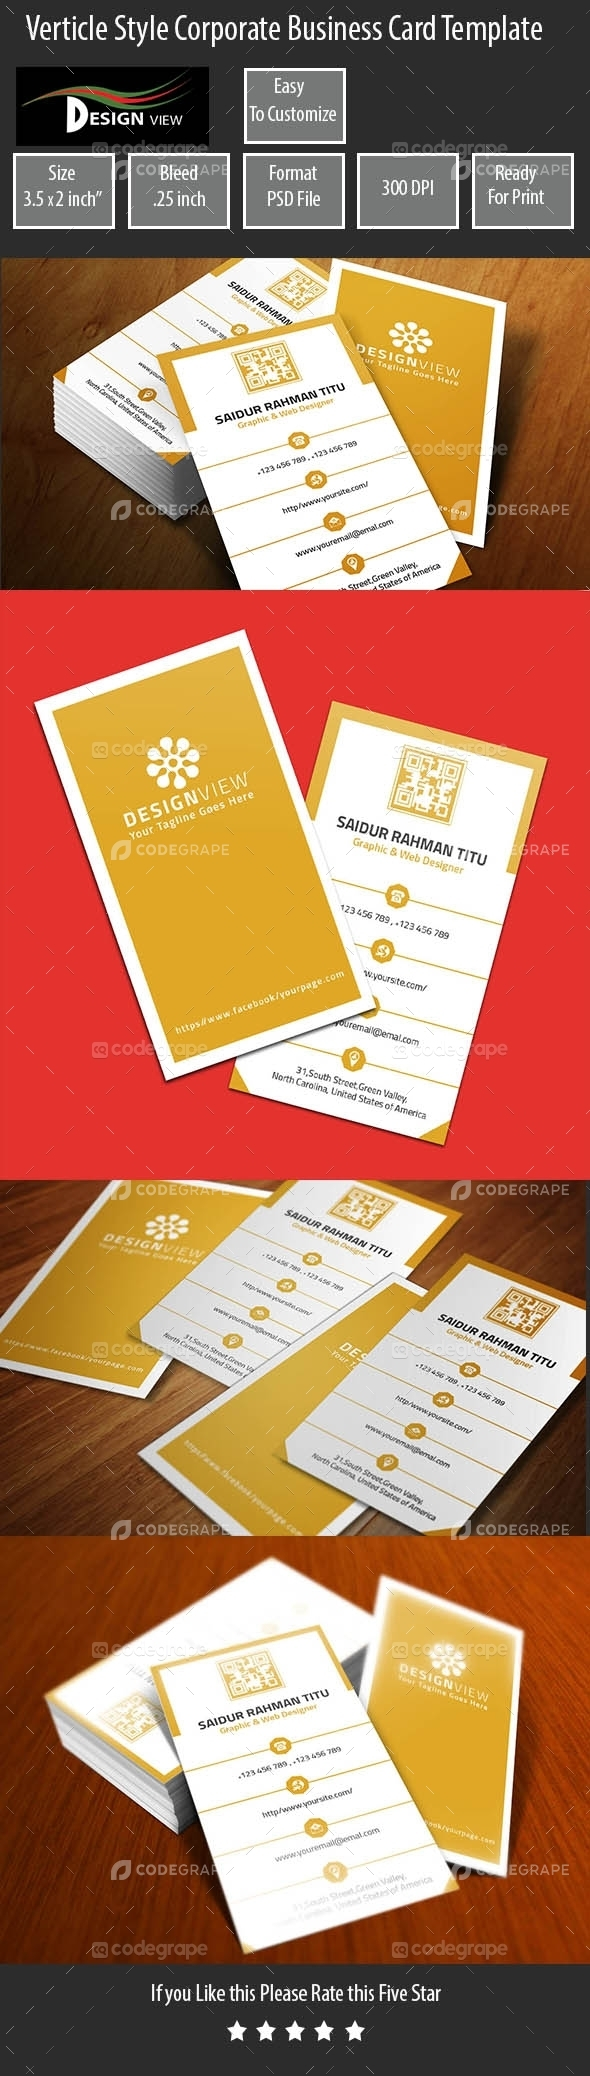 Verticle Style Corporate Business Card Template